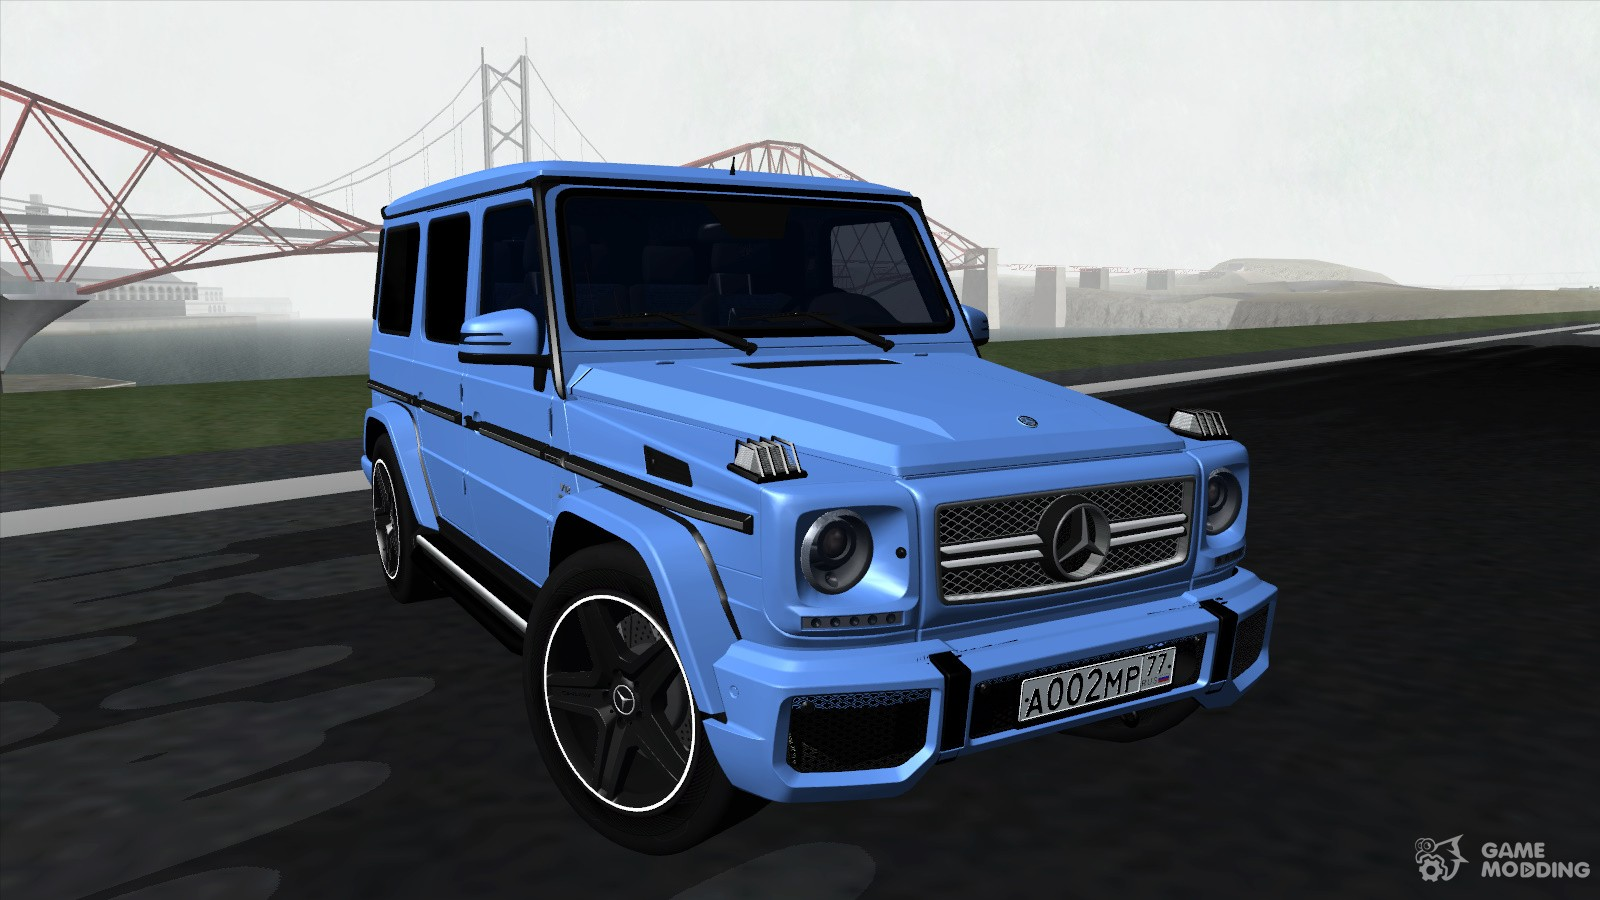 mini cooper makar with 56133 Avtomobili Dlya Gta Criminal Russia on Inspiration Beautifully Rendered 3d Vehicles likewise 169967 in addition List Of Hindu Festivals Wikipedia as well 2014 For Capricorn further 2 Year Old Mini Moto Rider Vs 4 Year Old Go Kart Driver Video.